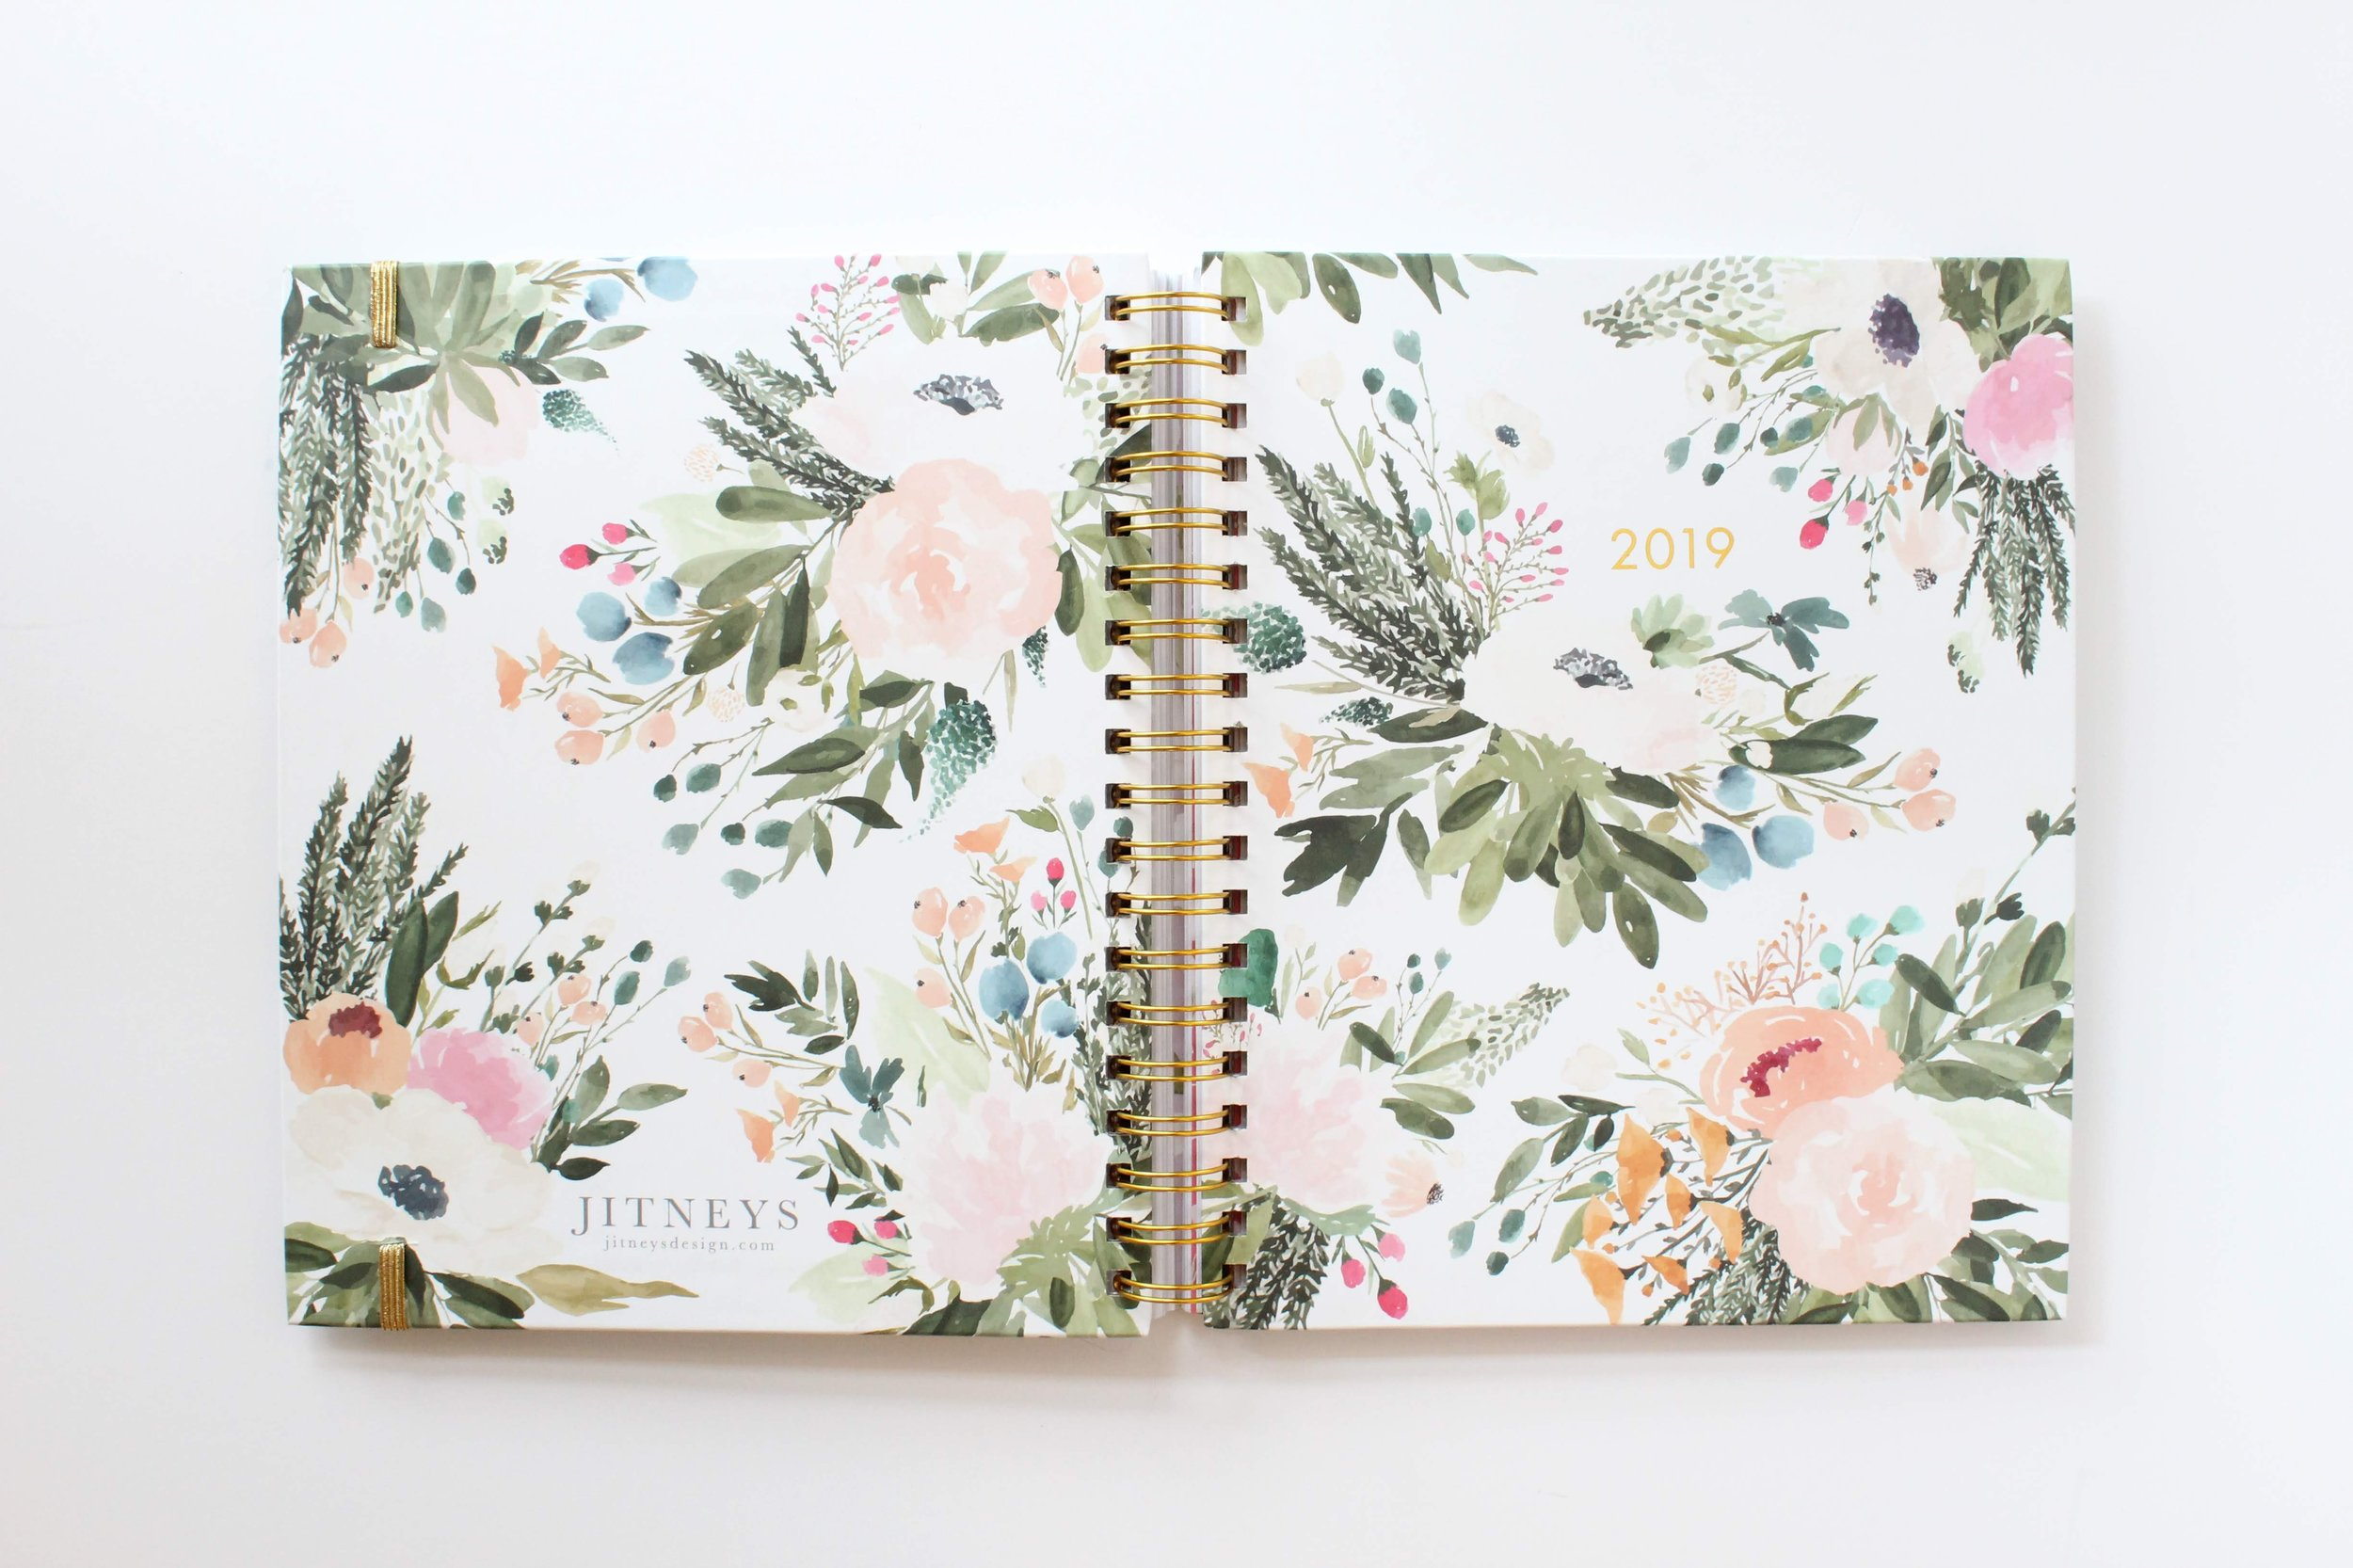 2019 Agenda Floral Planner Cover by Jitneys